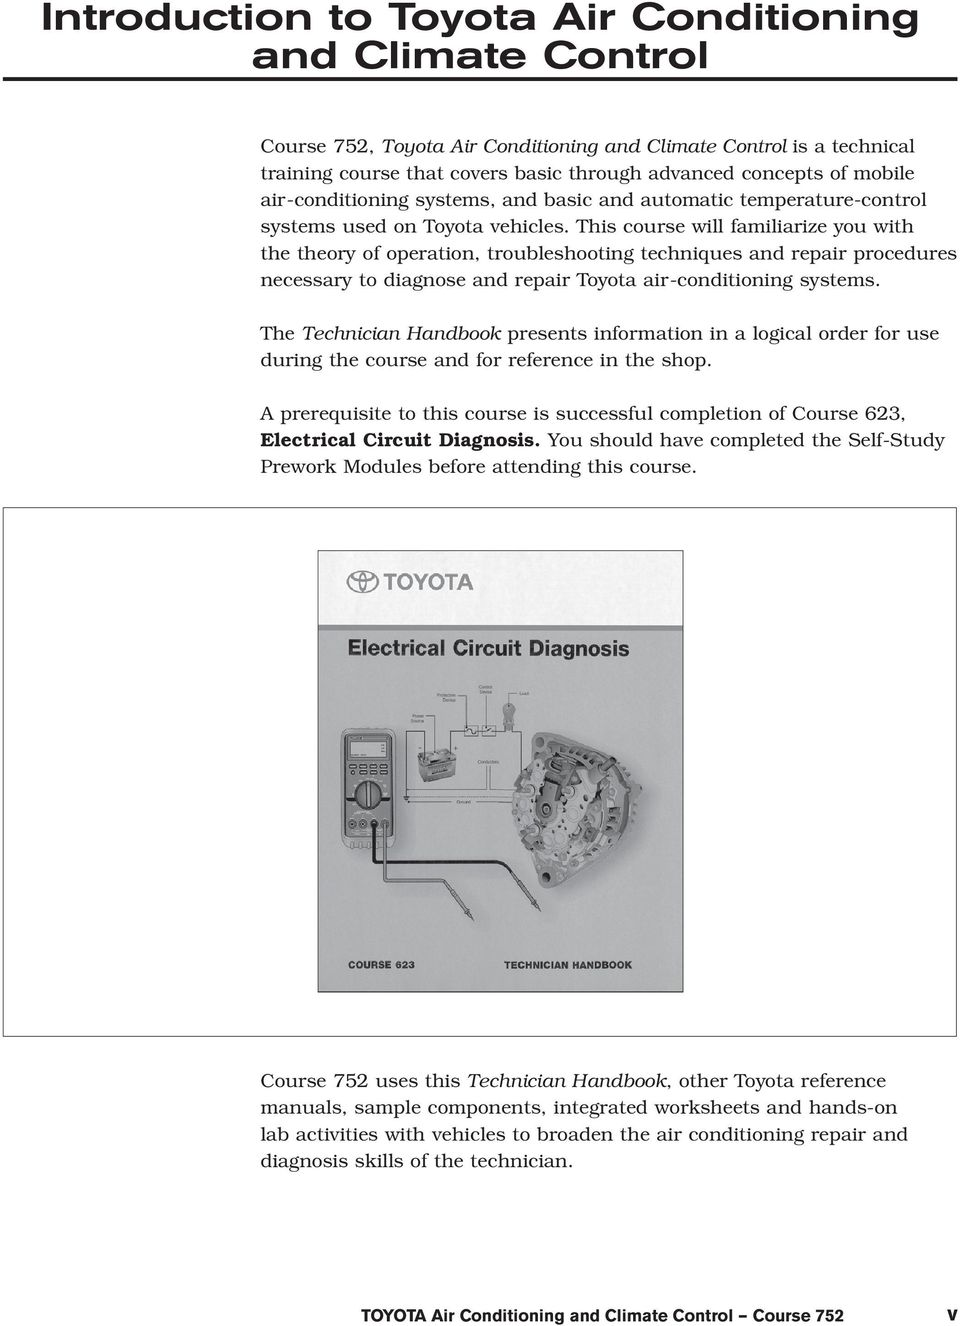 Air Conditioning And Climate Control Course Pdf Portable Electric Space Heaters Likewise Furnace Fan Limit Switch This Will Familiarize You With The Theory Of Operation Troubleshooting Techniques Repair Procedures